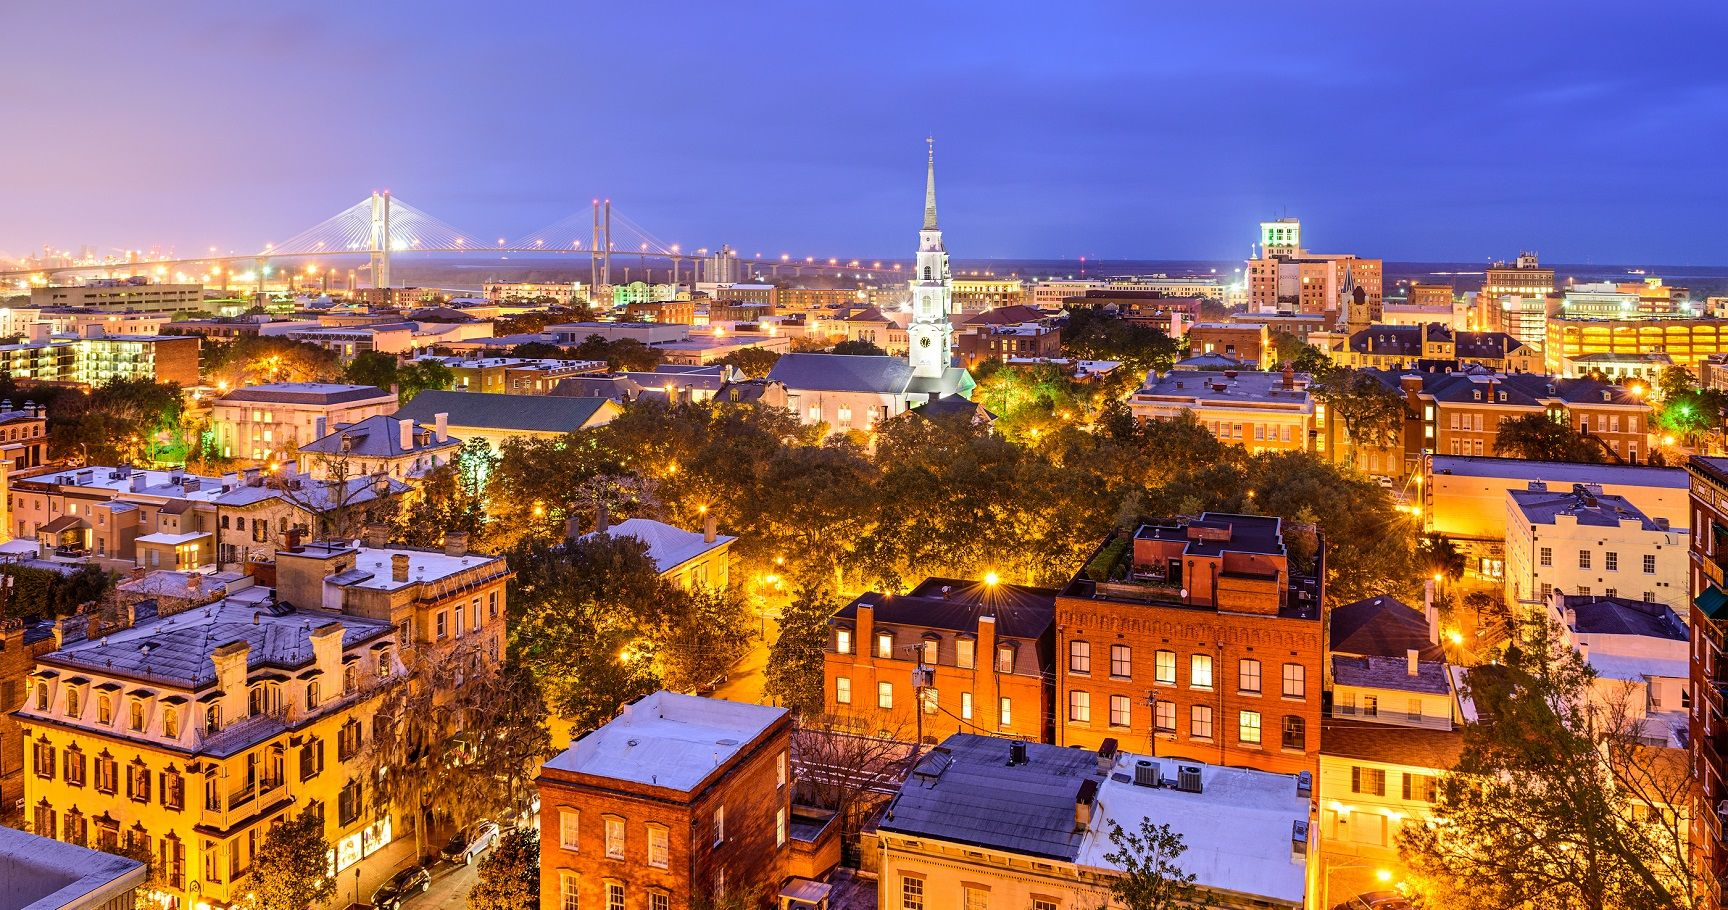 The 10 Most Underrated Cities In The United States